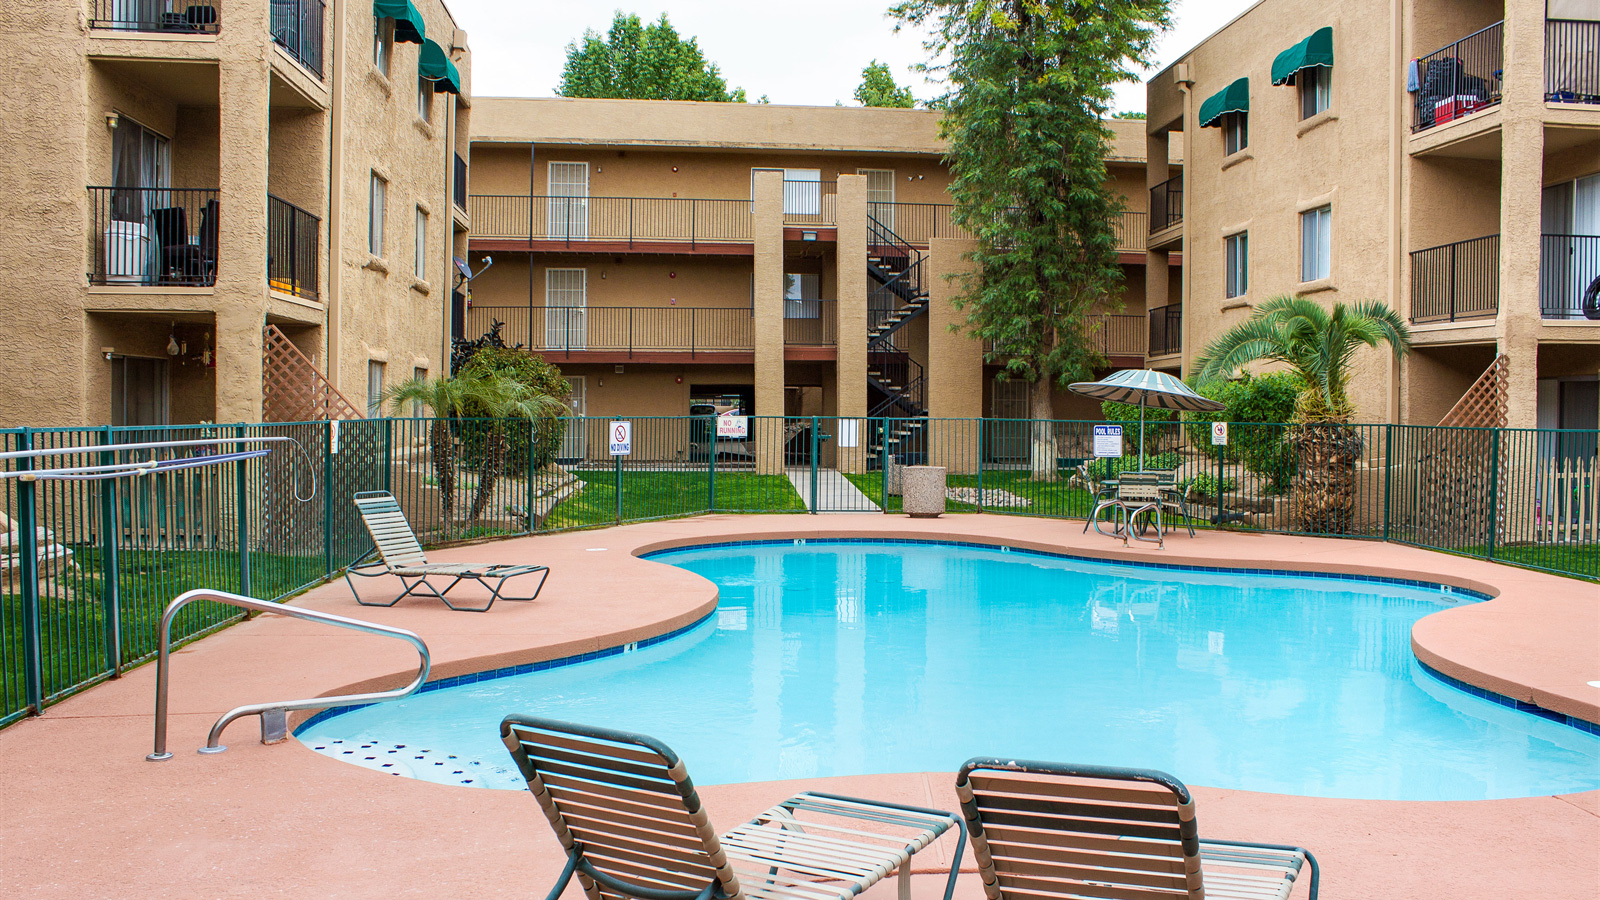 Cambridge Square Apartment Homes | 6060 West Royal Palm Road, Glendale, AZ 85302 | 156 Units | Built in 1984 | $9,100,000 | $58,333 Per Unit | $82.15 Per SF